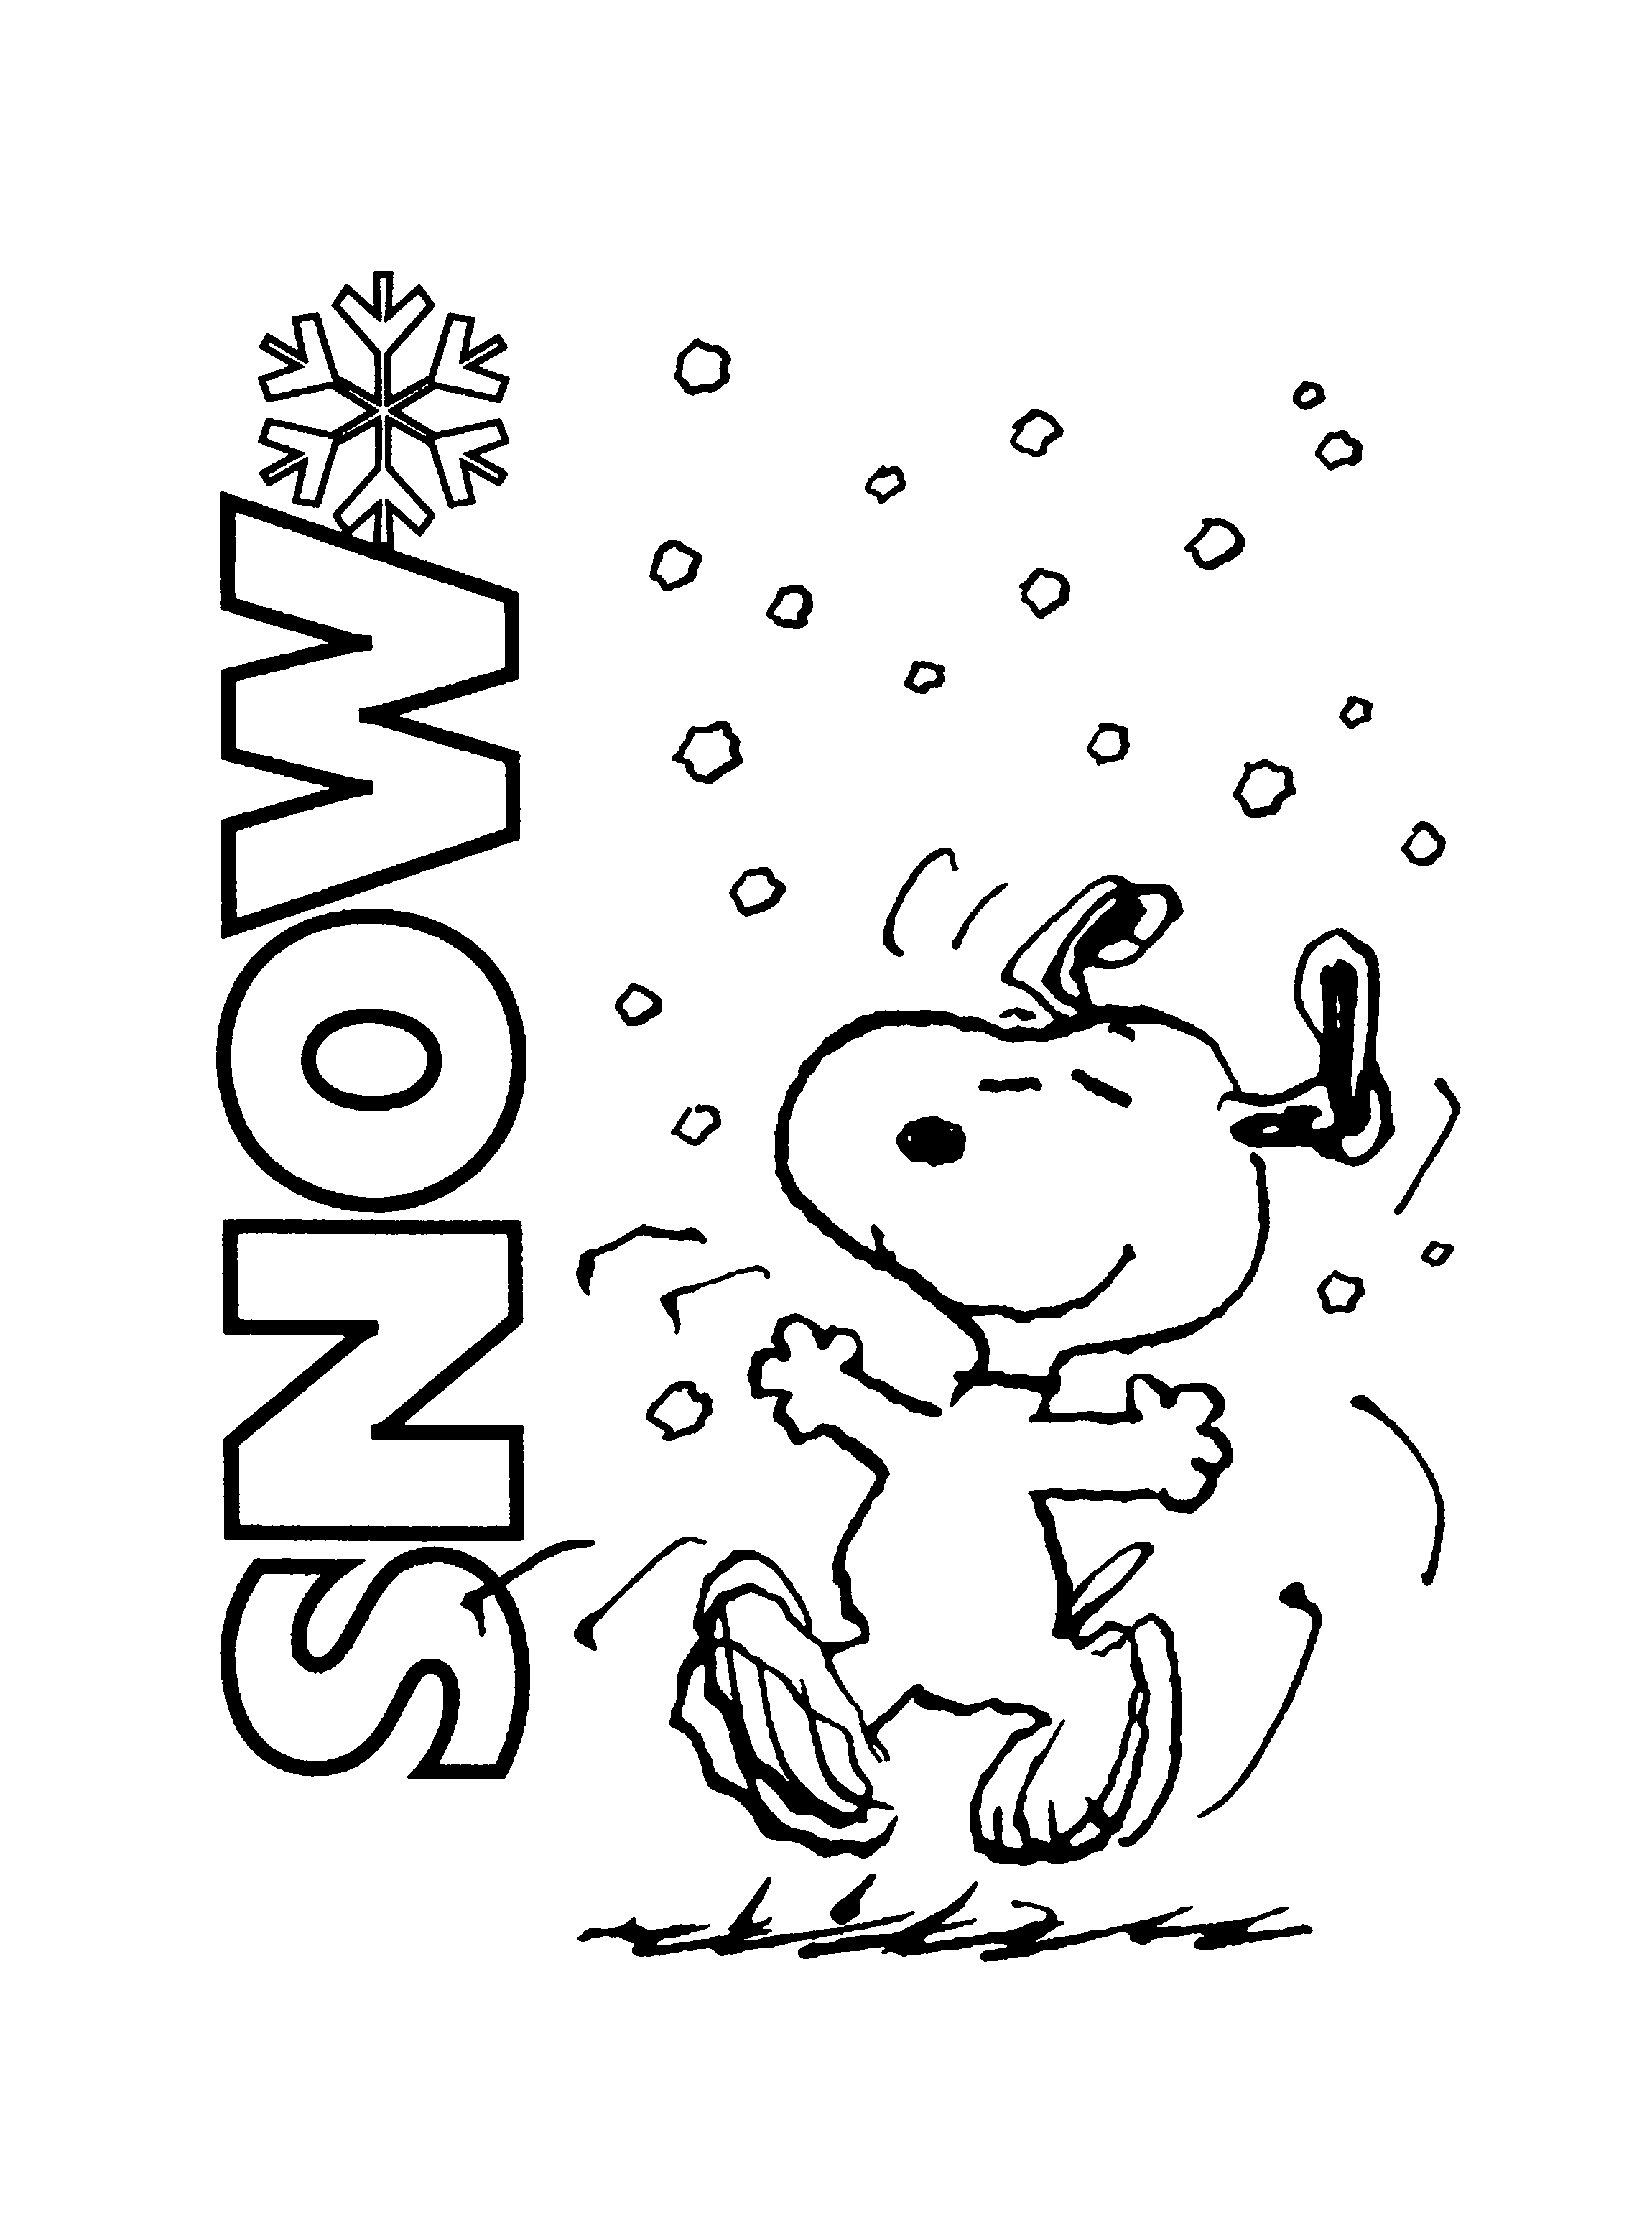 Peanuts Xmas Coloring and Activity Book